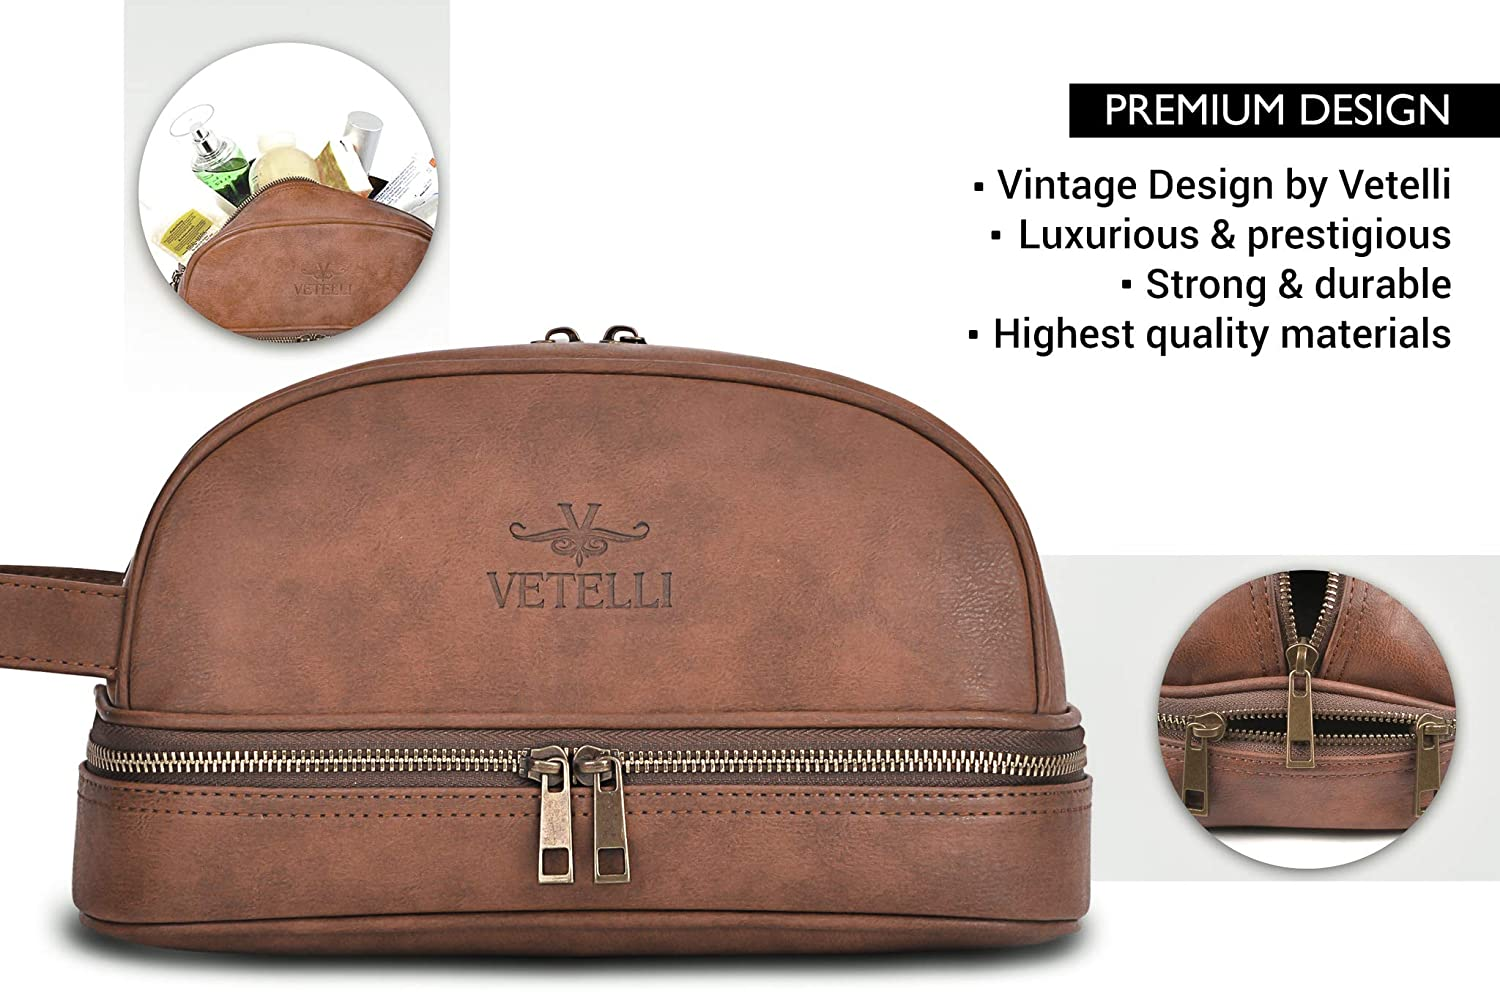 V107 with free Travel Bottles Vetelli Leather Toiletry Bag For Men Dopp Kit The perfect gift and travel accessory